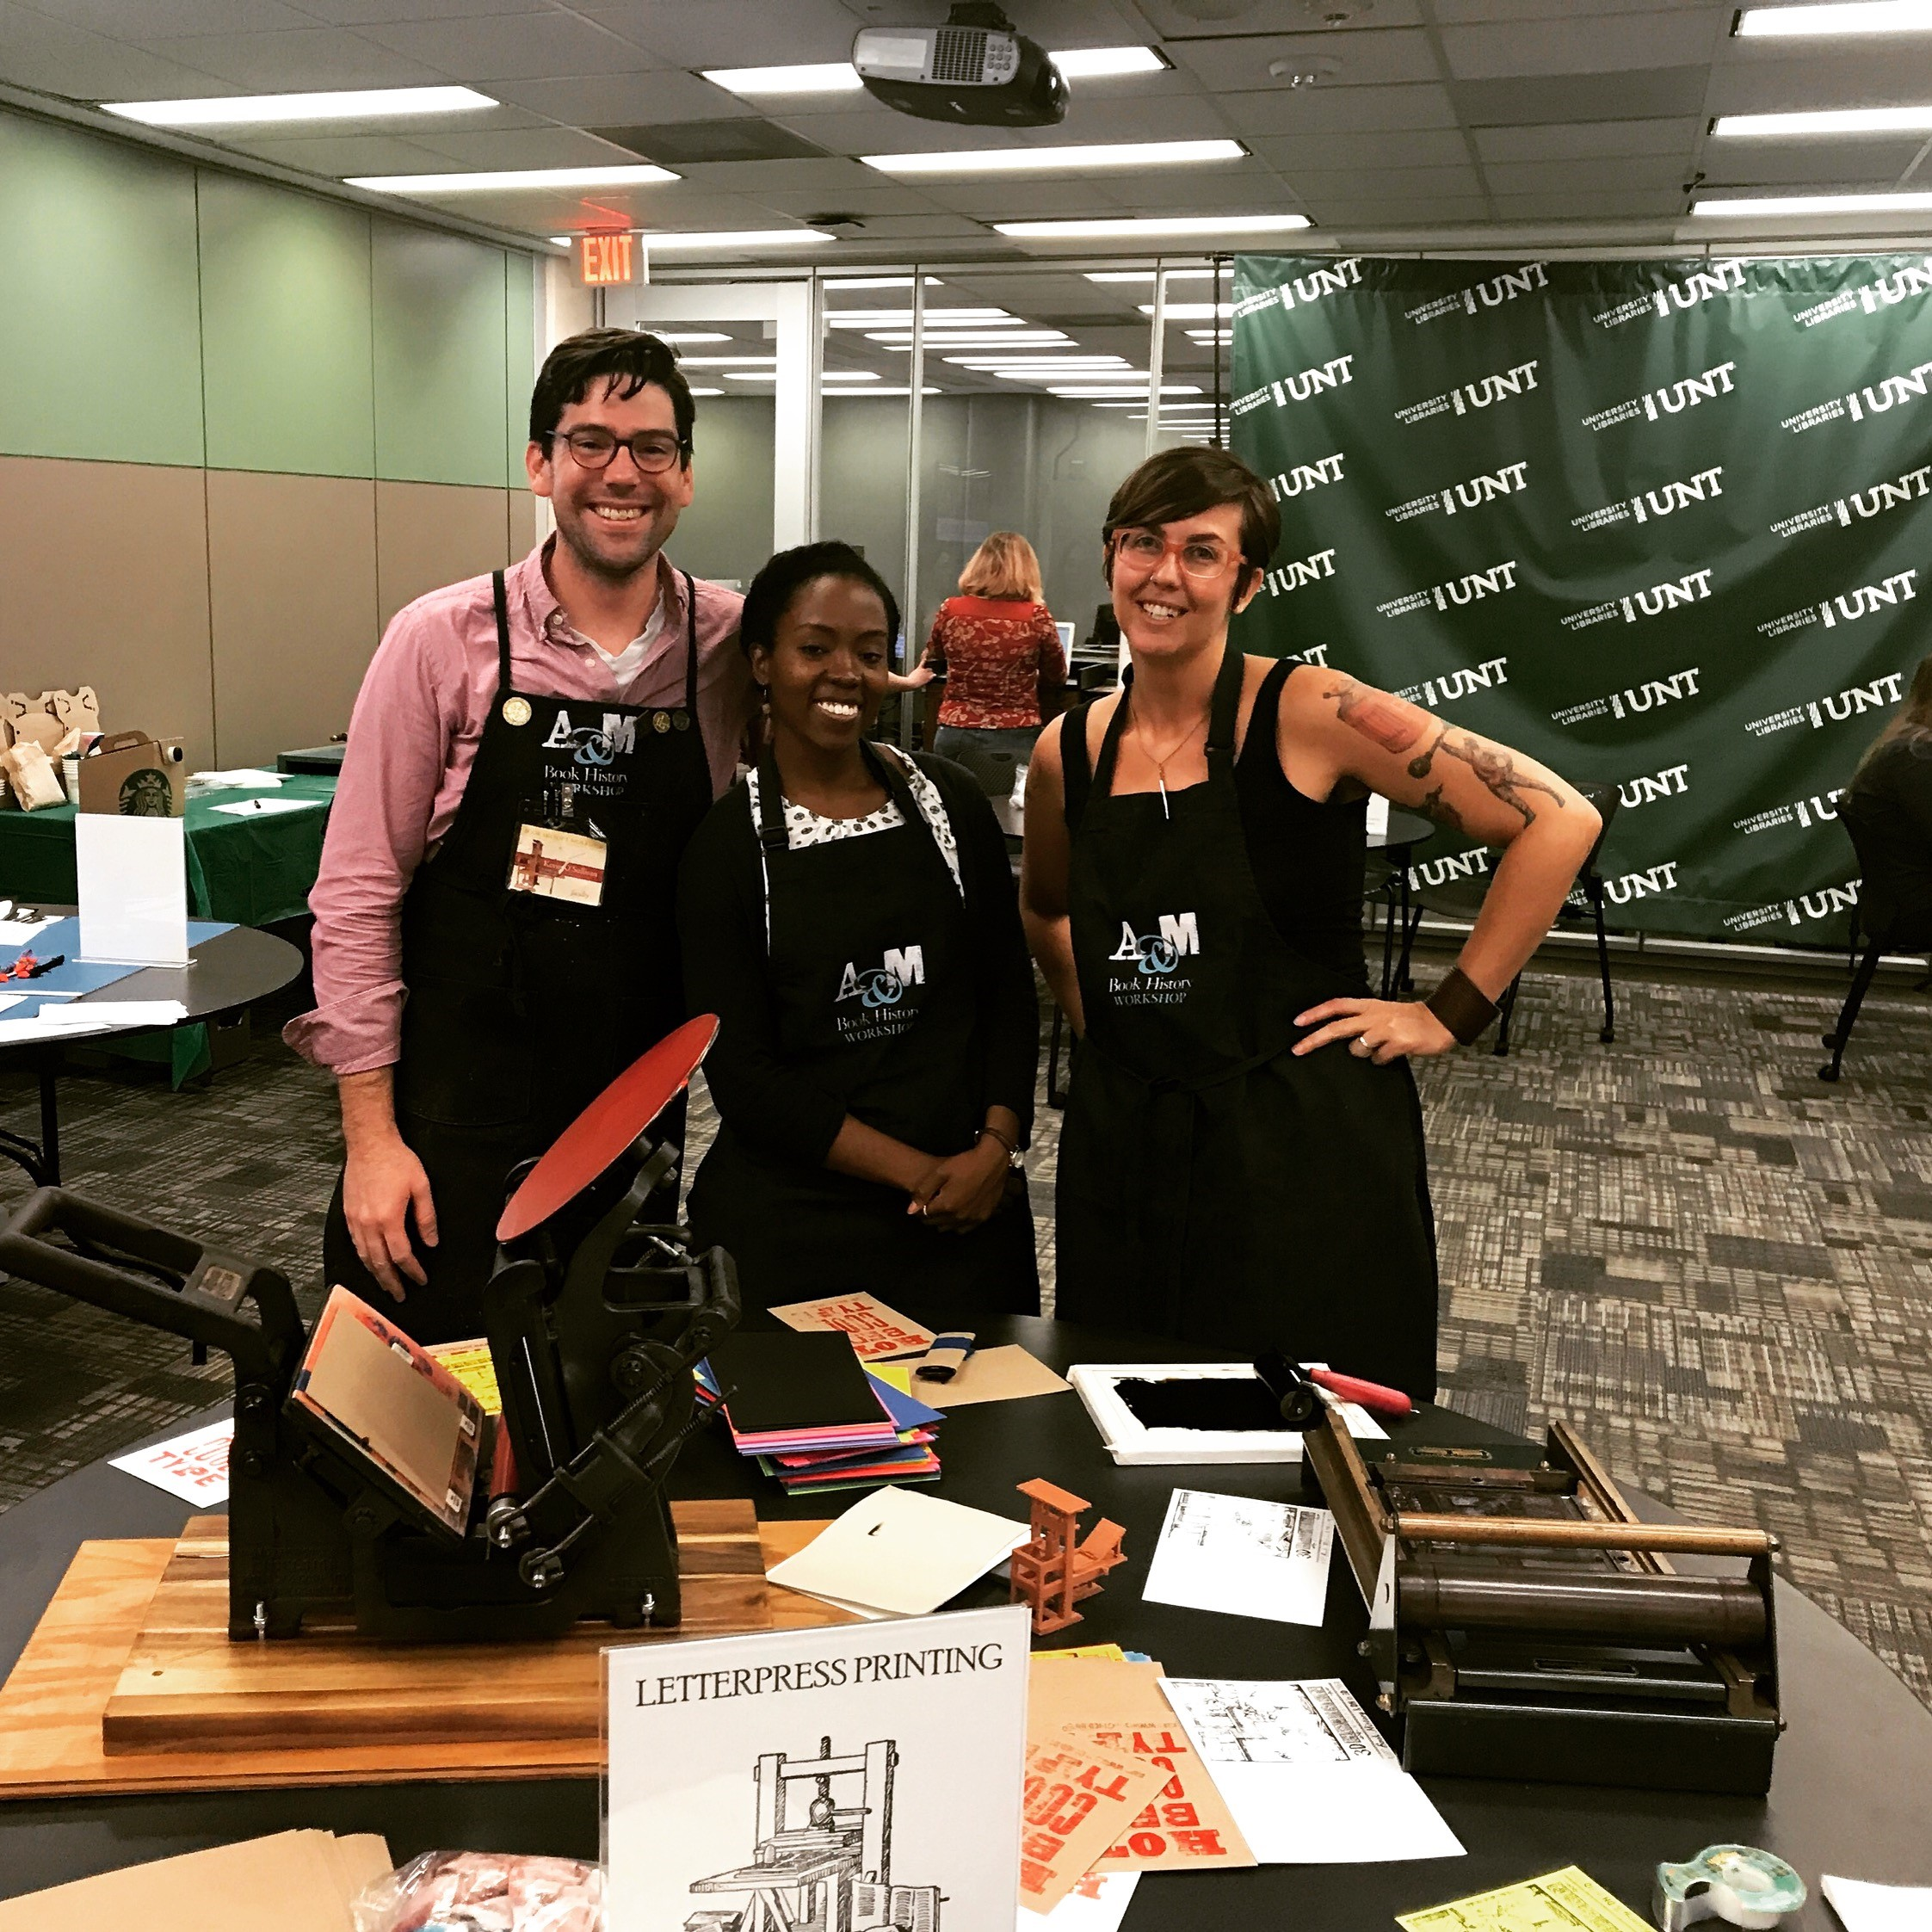 (From left to right) Kevin O'Sullivan, Marcia McIntosh, and Courtney Jacobs (or the 3Dhotbed crew), hosted a hands-on book history workshop for Digital Frontiers 2017.